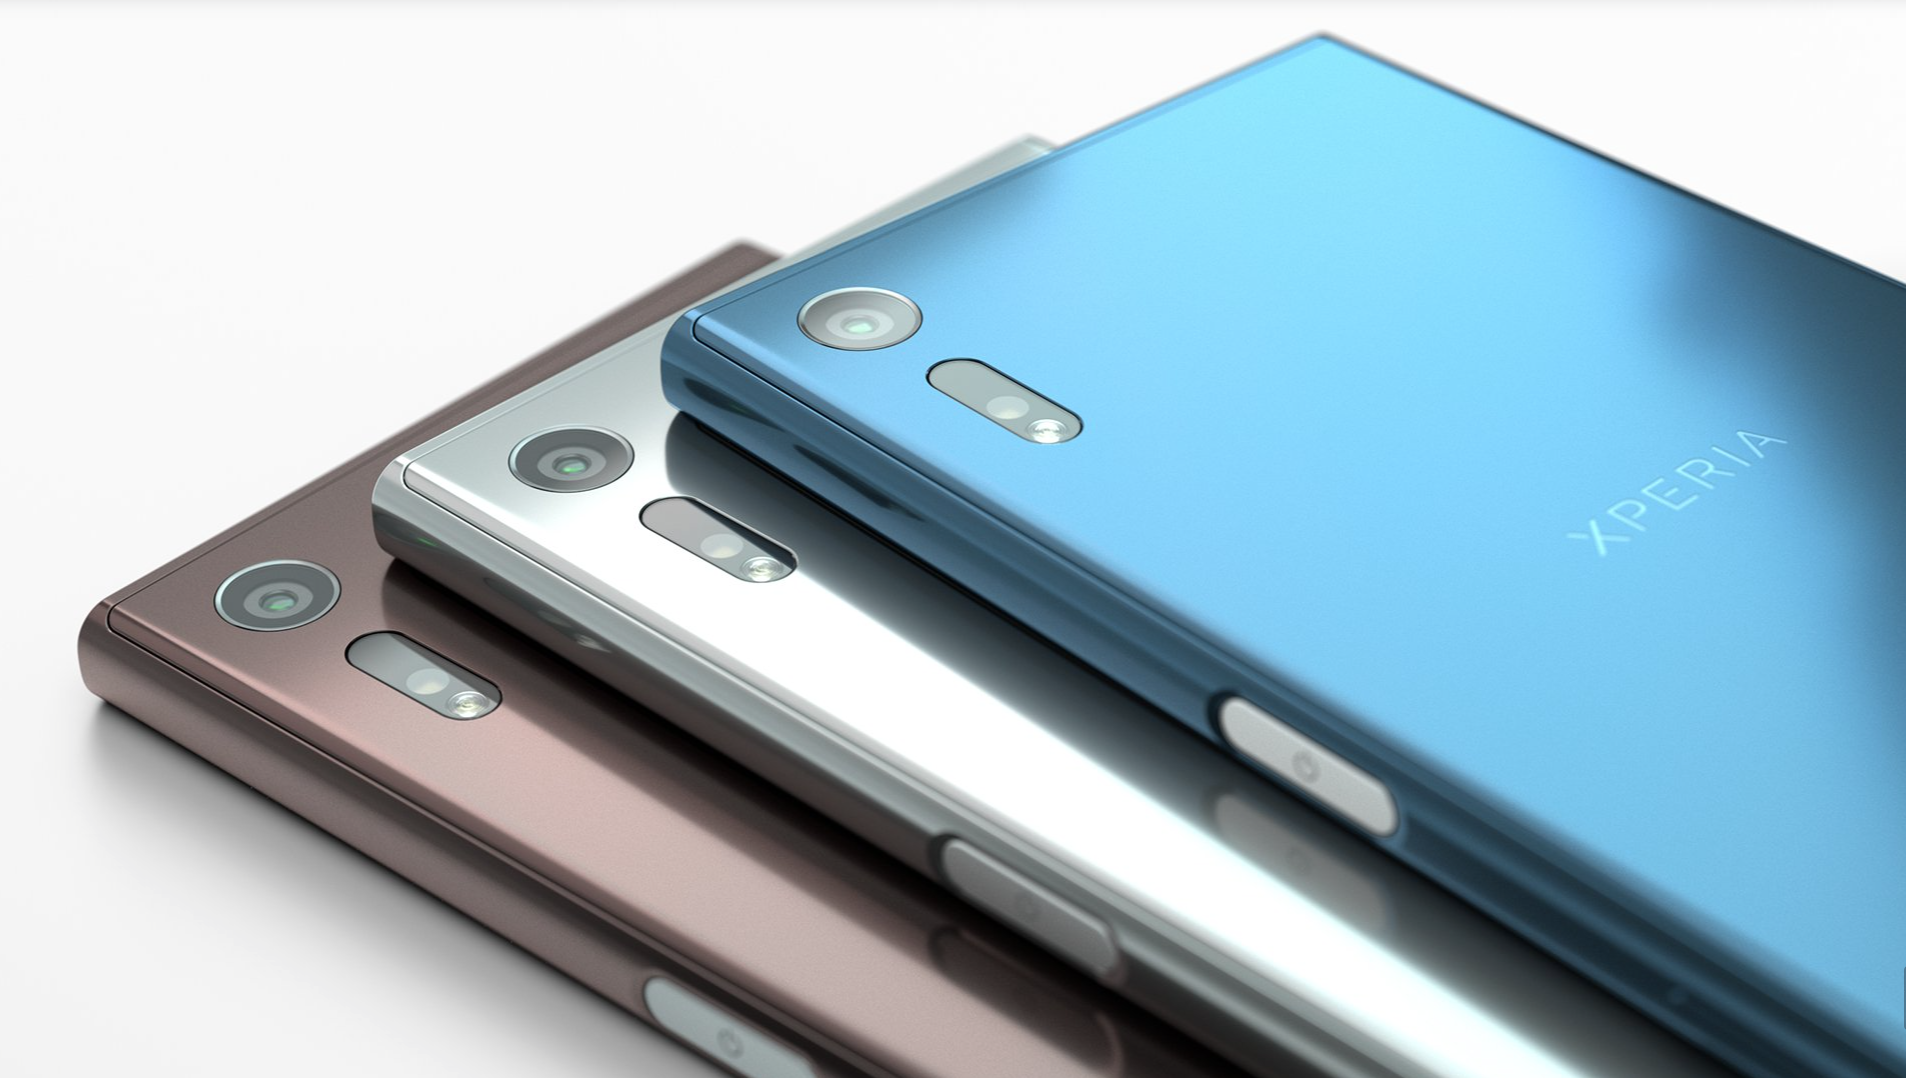 Sony Xperia XZ Color Variants